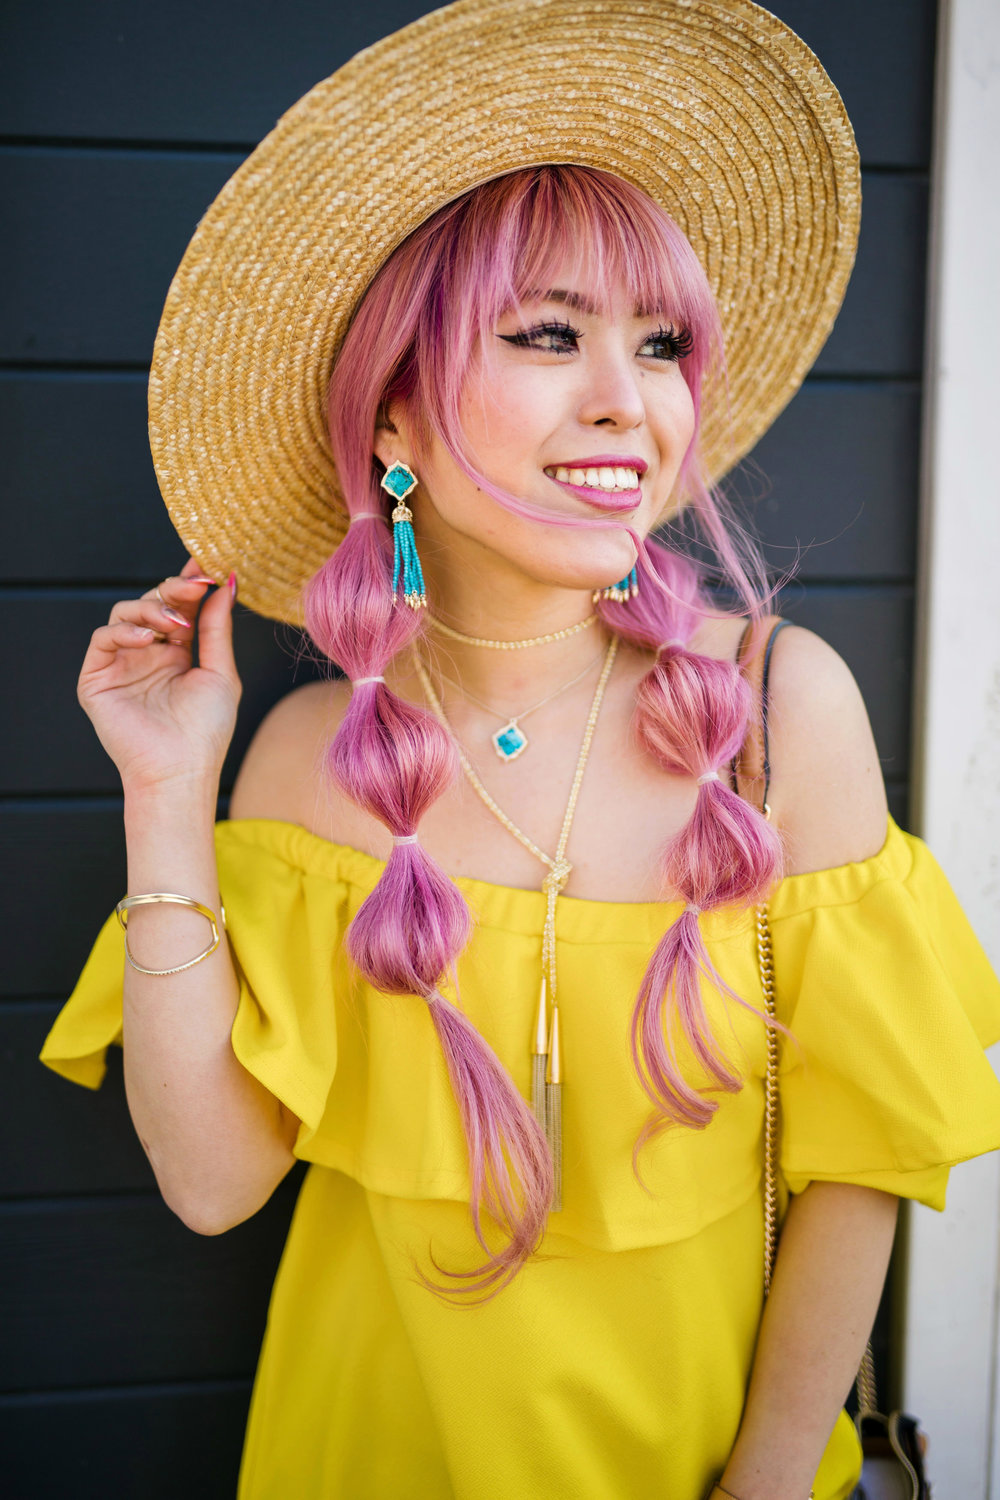 Lack Of Color Wide brim Straw Hat_Boohoo Yellow Off the shoulder dress via ASOS_ZARA CROSSBODY BAG WITH FLOWERS_Shoe Dazzle Lace up Wedge Sandals_Kendra Scott MISHA STATEMENT EARRINGS IN BRONZE VEINED TURQUOISE_KACEY LONG PENDANT NECKLACE IN BRONZE VEINED TURQUOISE_Phara Necklace In Gold_Stella Cuff Bracelet In Gold_Pink Hair_bubble pigtails hairstyle_Aikas Love Closet_Seattle Fashion Style Blogger_Japanese 17